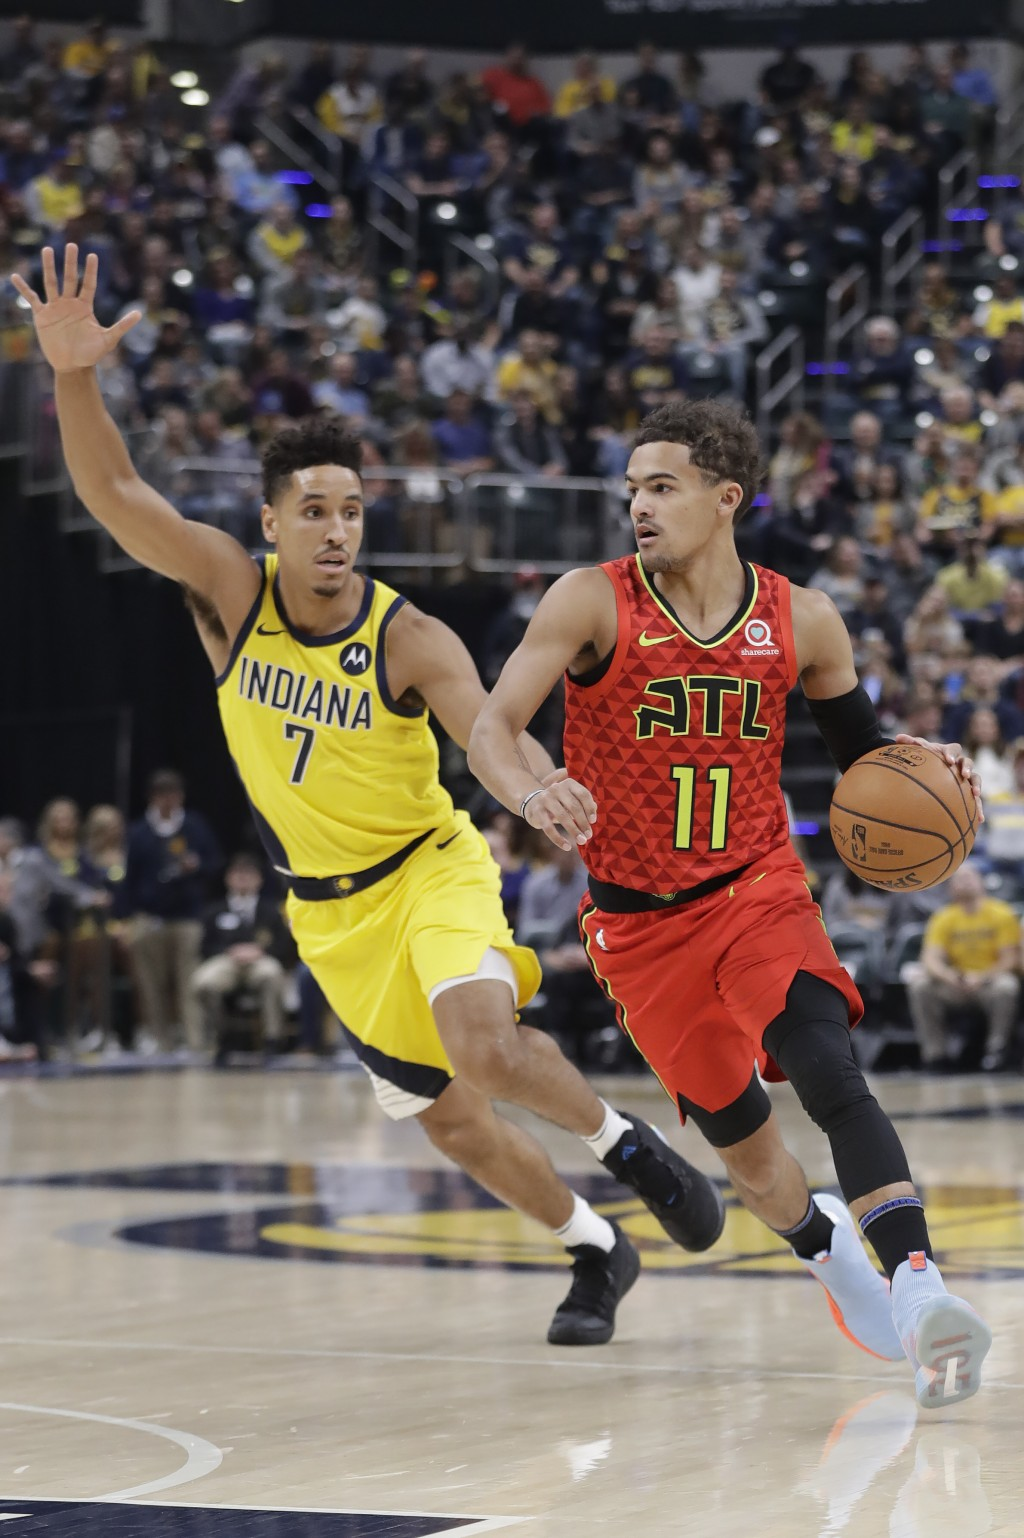 Atlanta Hawks' Trae Young (11) is defended by Indiana Pacers' Malcolm Brogdon (7) during the first half of an NBA basketball game, Friday, Nov. 29, 20...